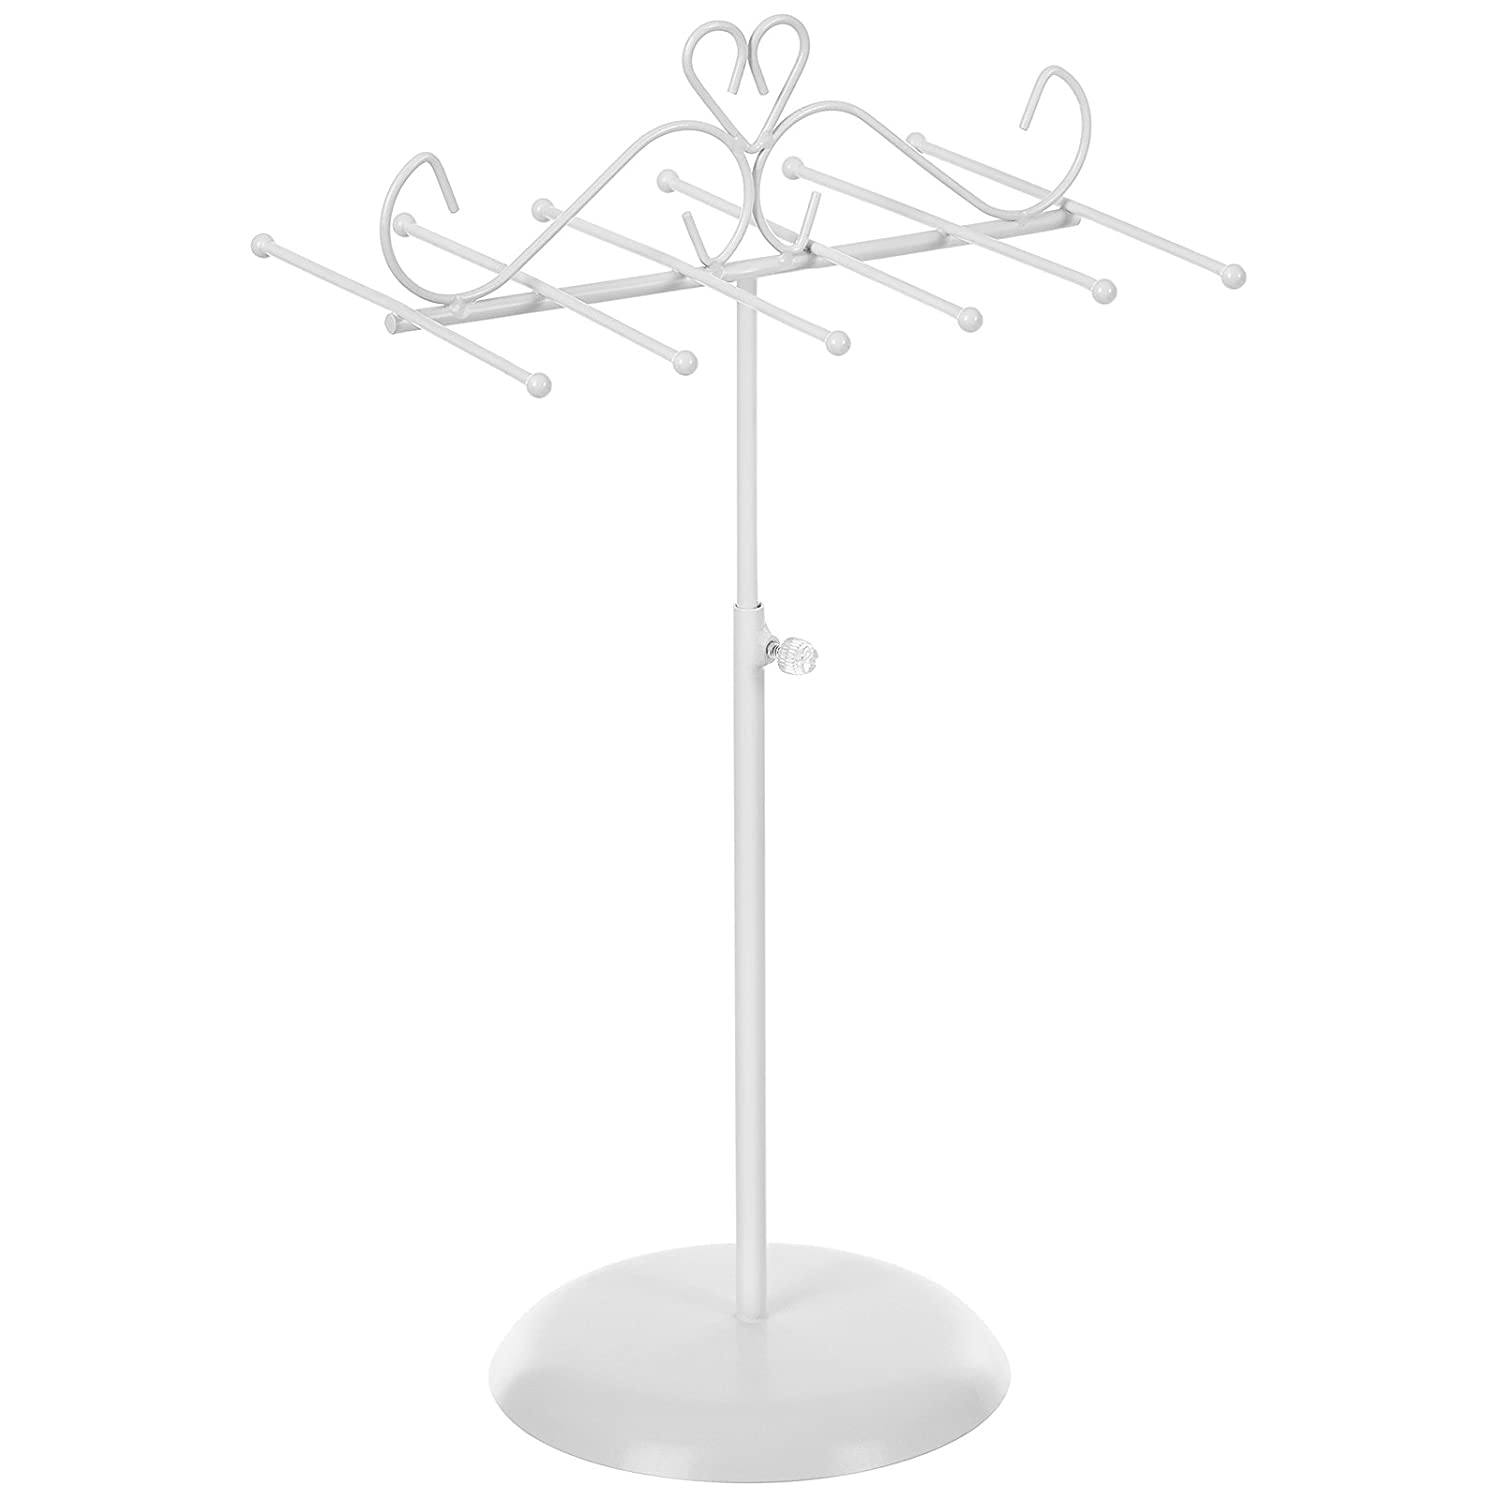 SONGMICS Jewellery Display Stand Holder, Metal Jewellery Rack Tree, for Necklaces, Chokers, Bracelets, Earrings, Gift for Girls Women, White JJS04WT